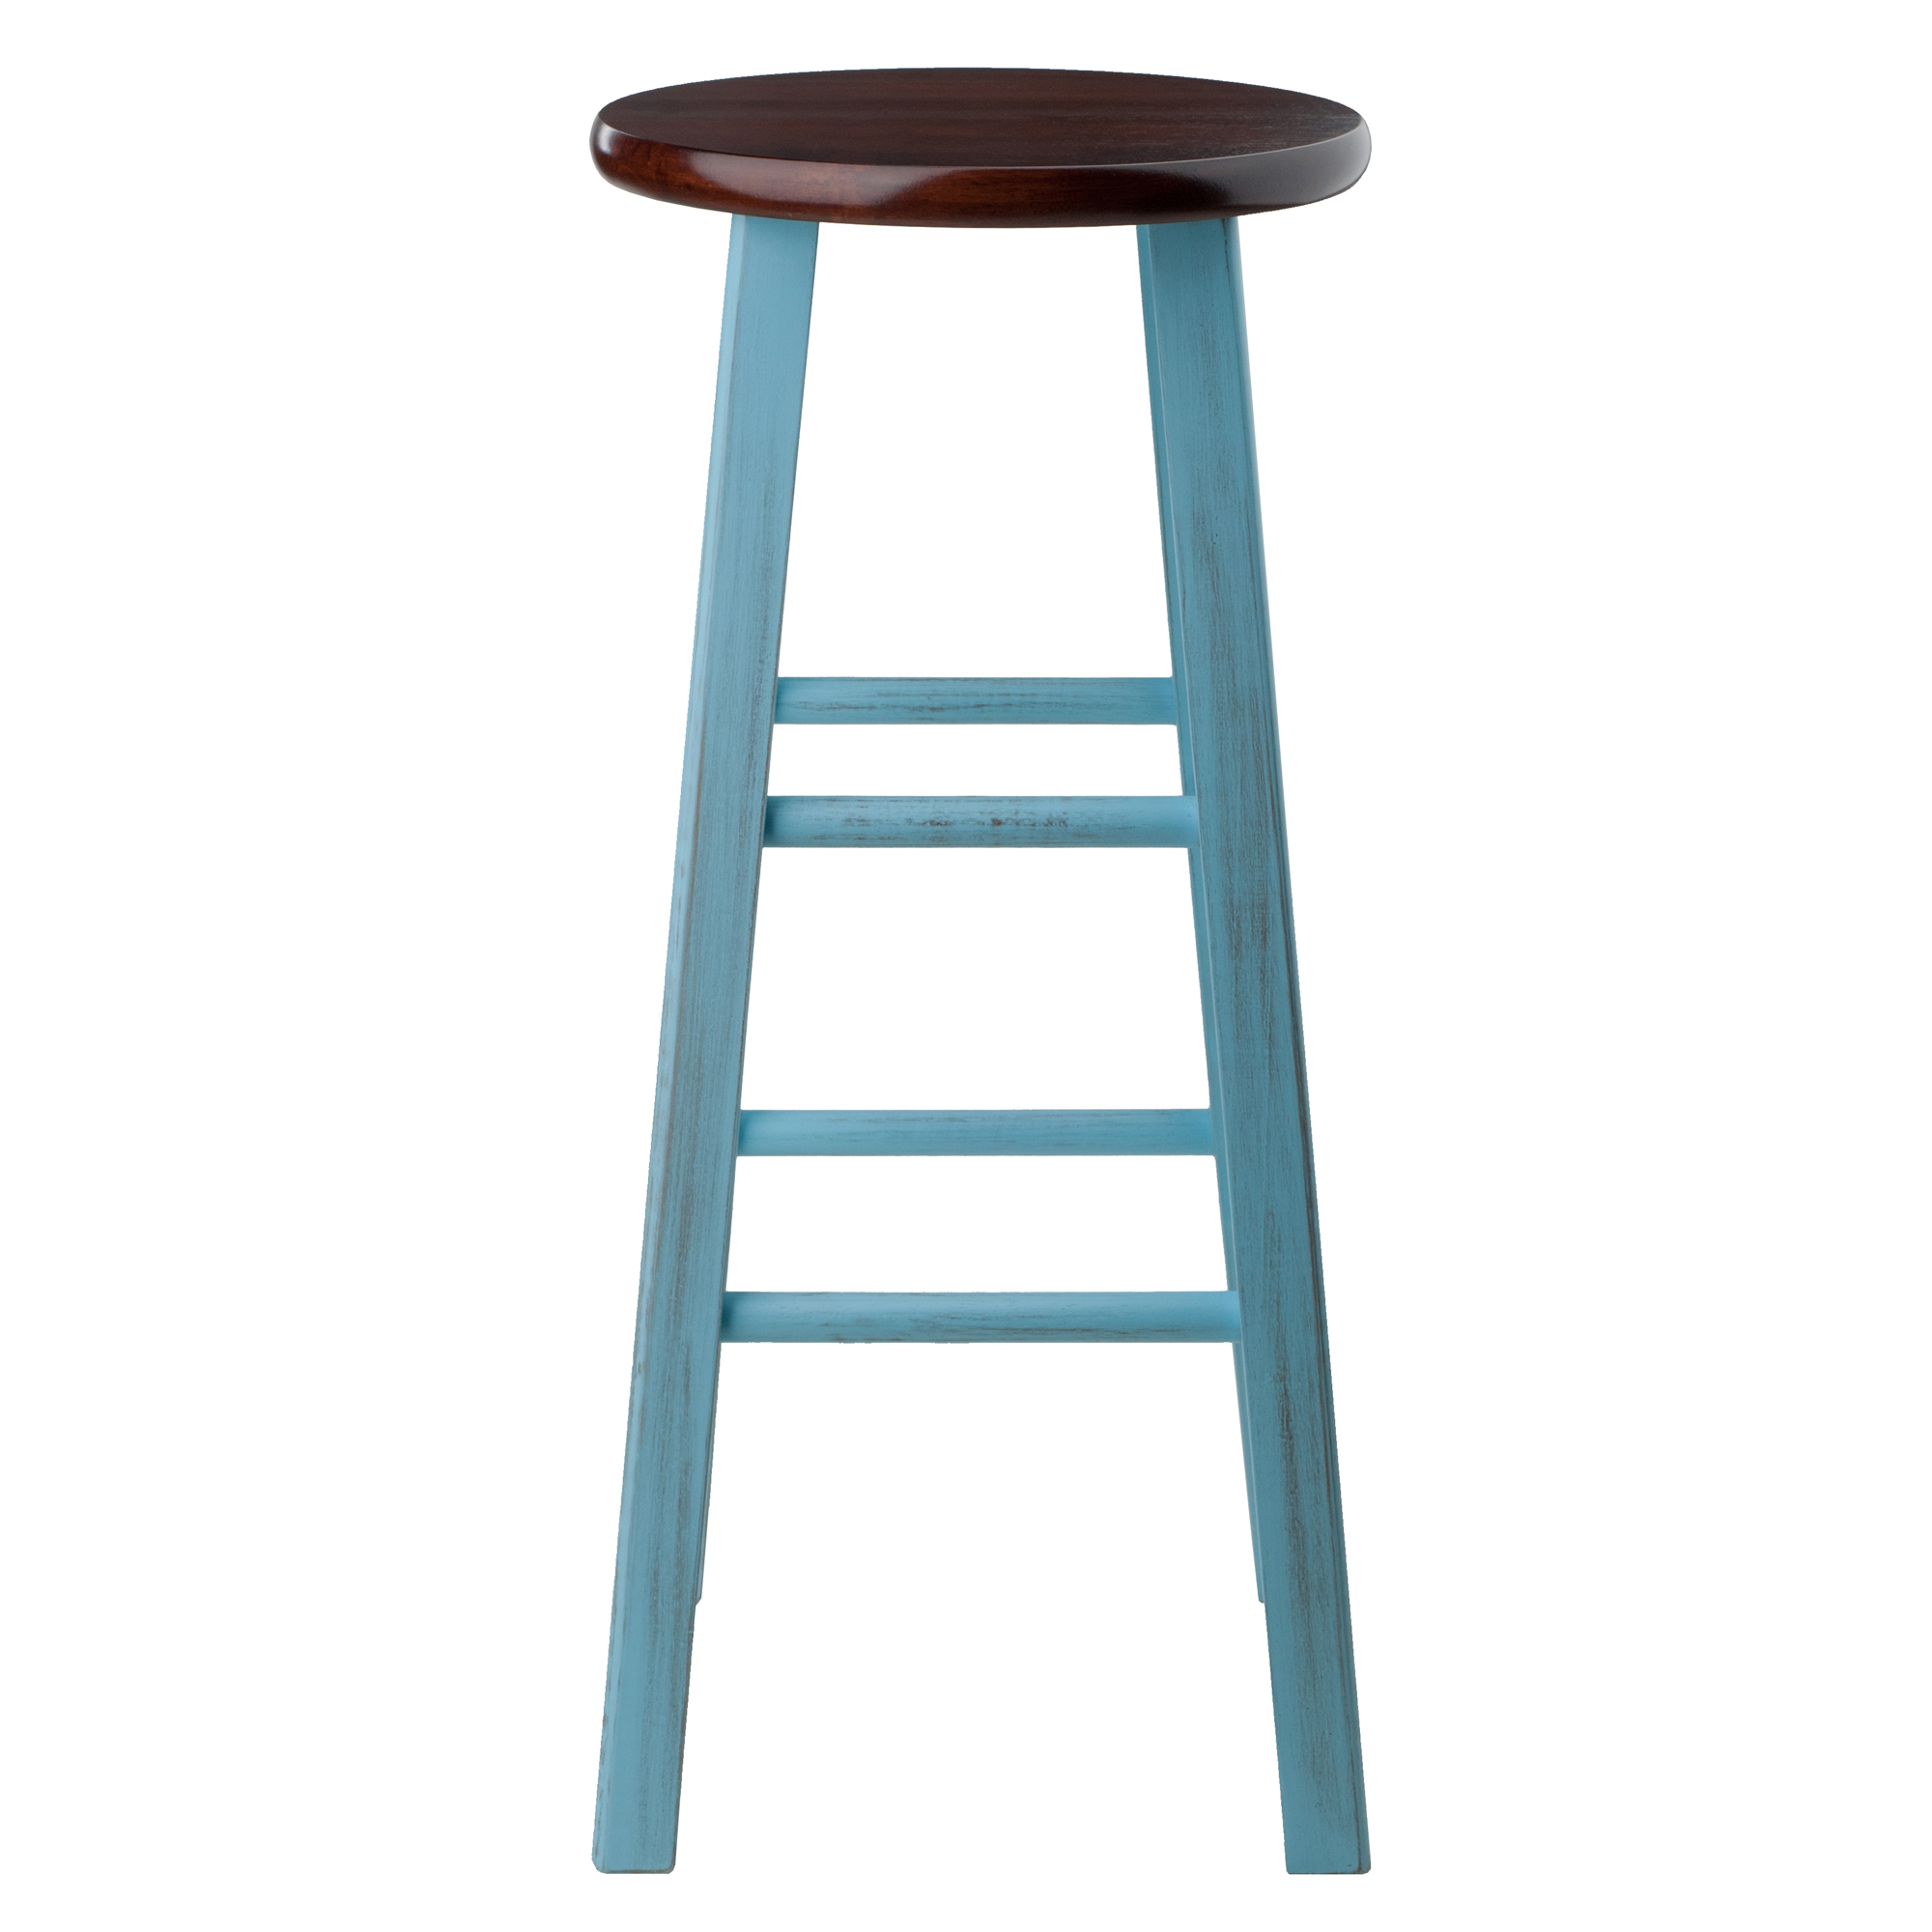 rustic rooms of stool back blue tall amazon target to cheap size kitchen swivel go metal full with bar best wood stools